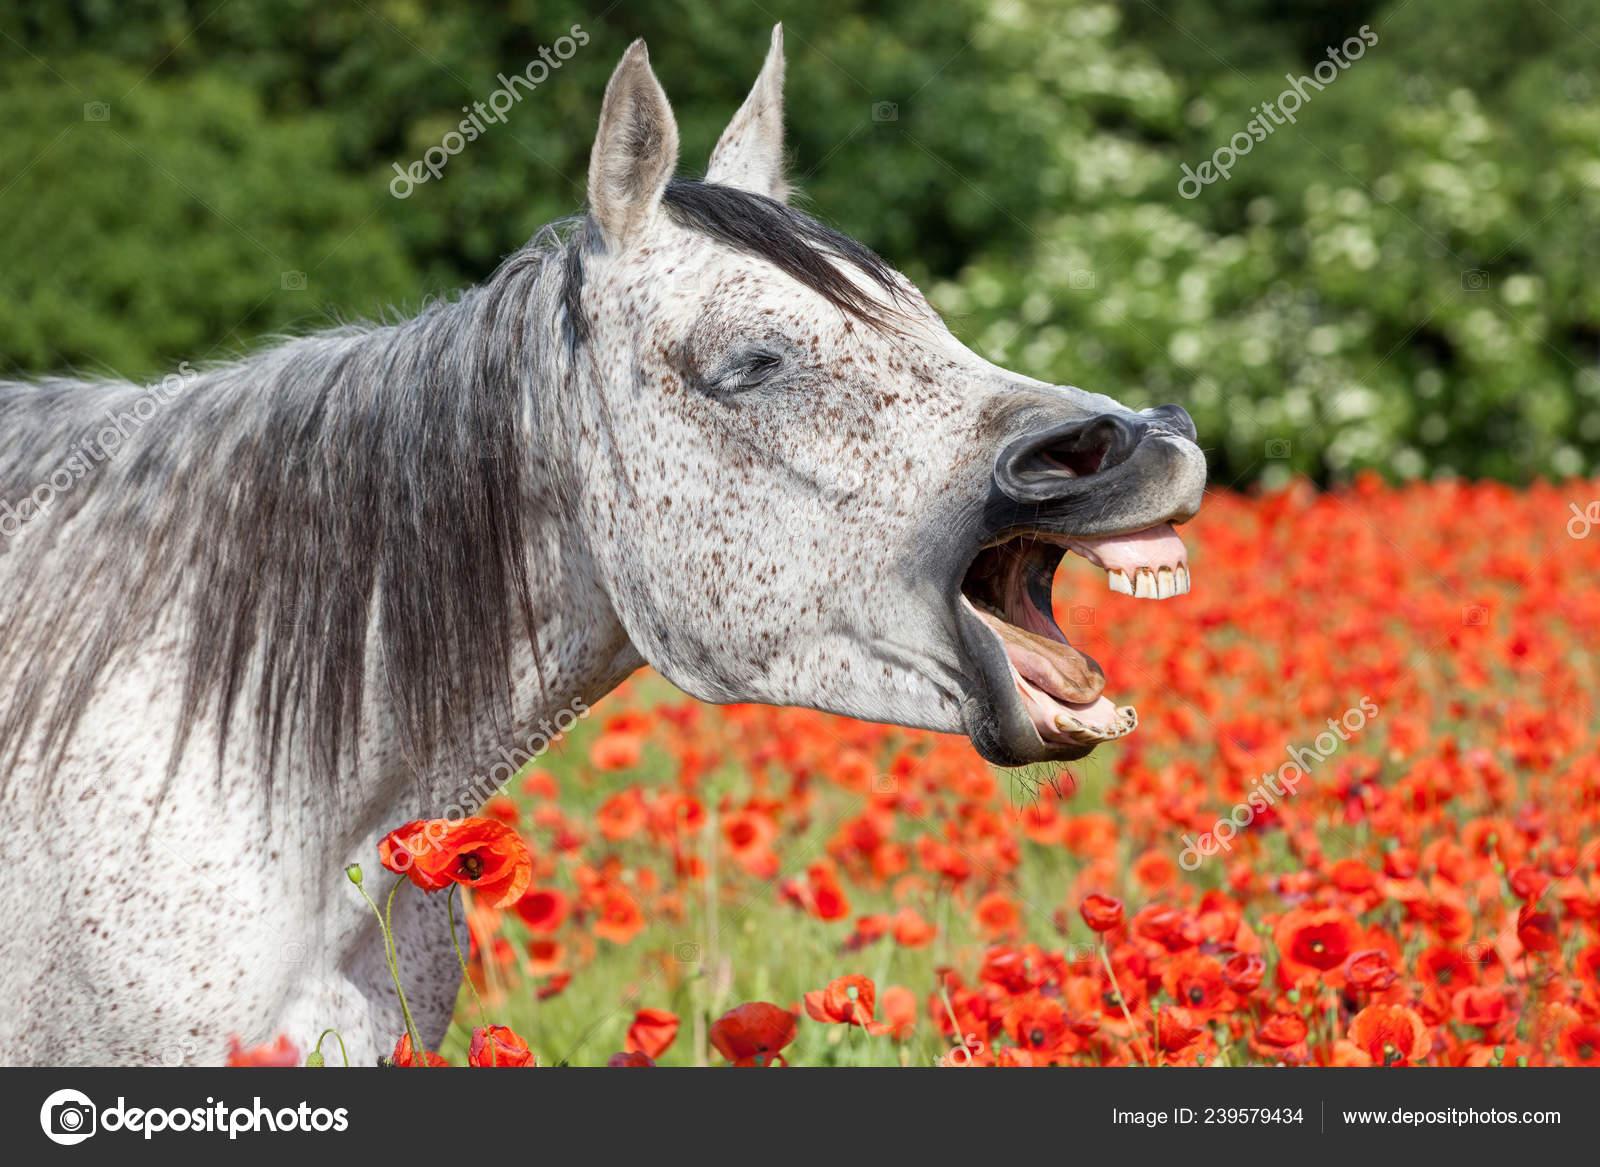 ᐈ Laughing Funny Stock Pictures Royalty Free Laughing Horse Photography Download On Depositphotos